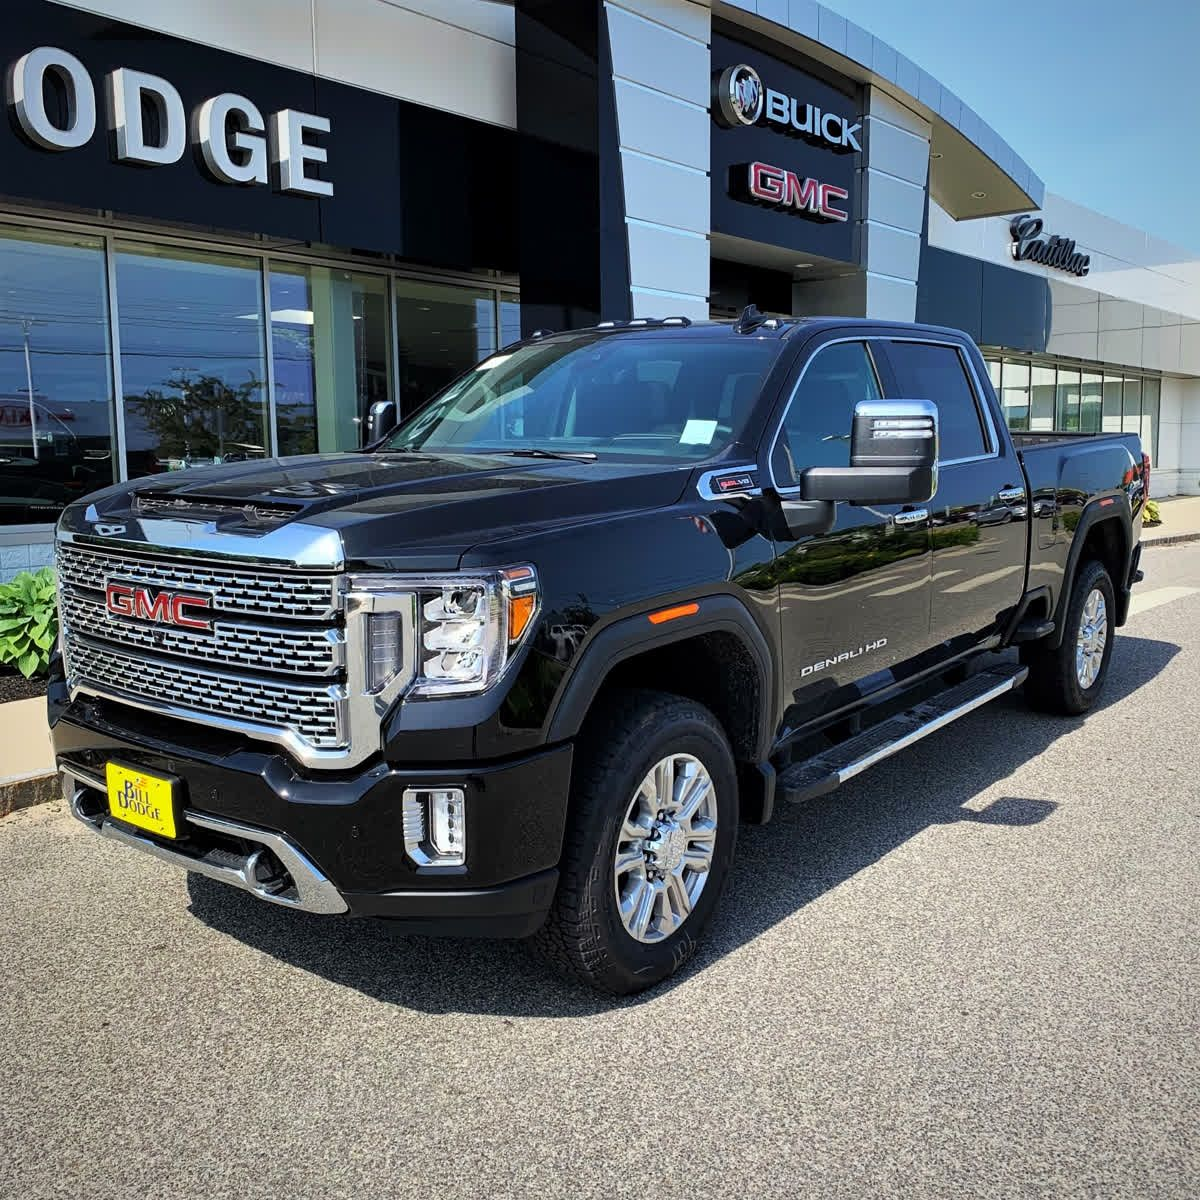 We Are Excited To Introduce The All New 2020 Gmc Sierra 2500hd Crew Cab Denali Shop Out 2020 Sierra 2500hd Lineup Bit Gmc Sierra 2500hd Gmc Gmc Sierra